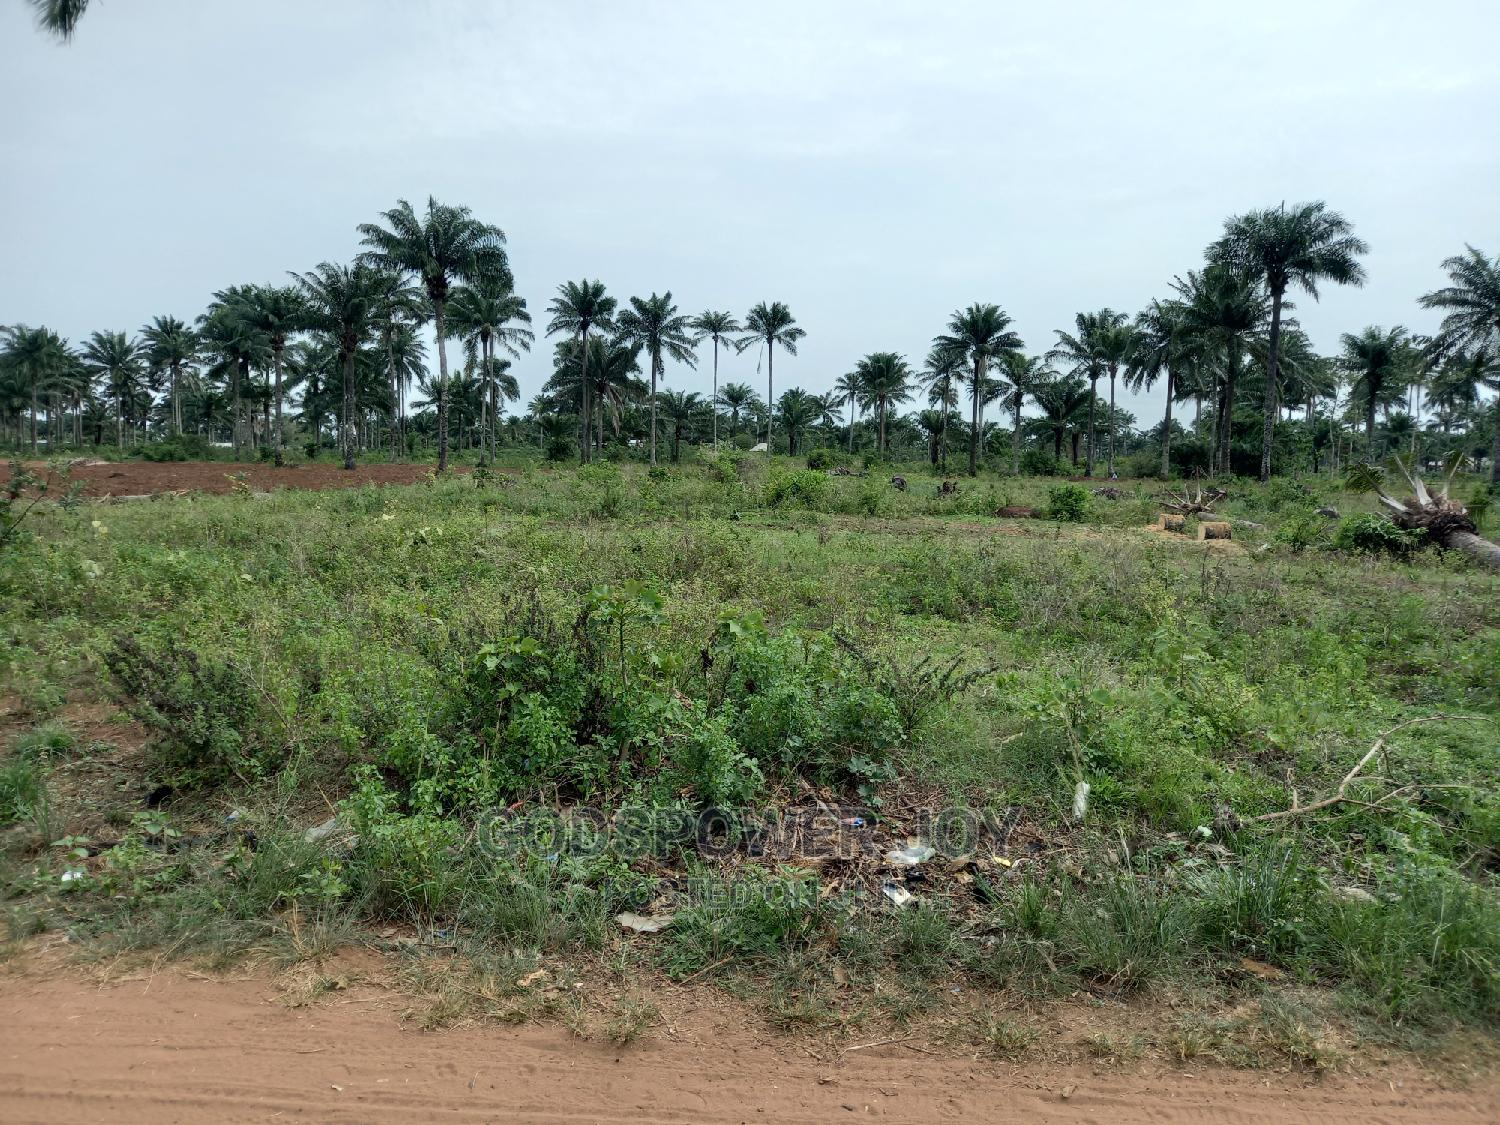 Plots of Dry Land for Urgent Sales | Land & Plots For Sale for sale in Badagry, Lagos State, Nigeria